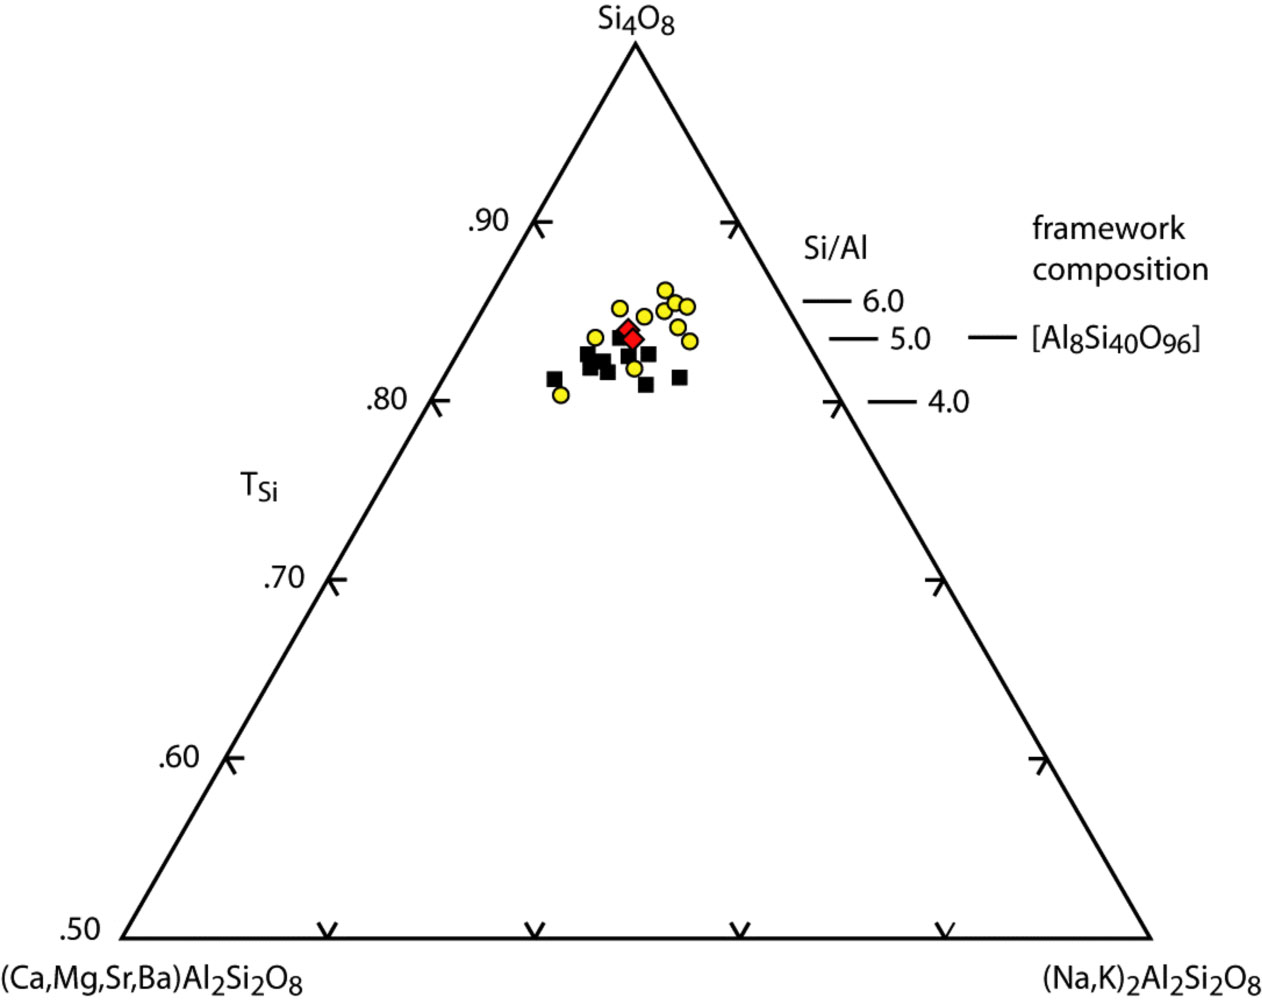 Iza Commission On Natural Zeolites Zeolite Process Flow Diagram R2 R Si Plot Of The Mordenite Compositions From Passaglia 1975 And Deer Et Al 2004 Black Squares Represent Samples Cavities In Basaltic